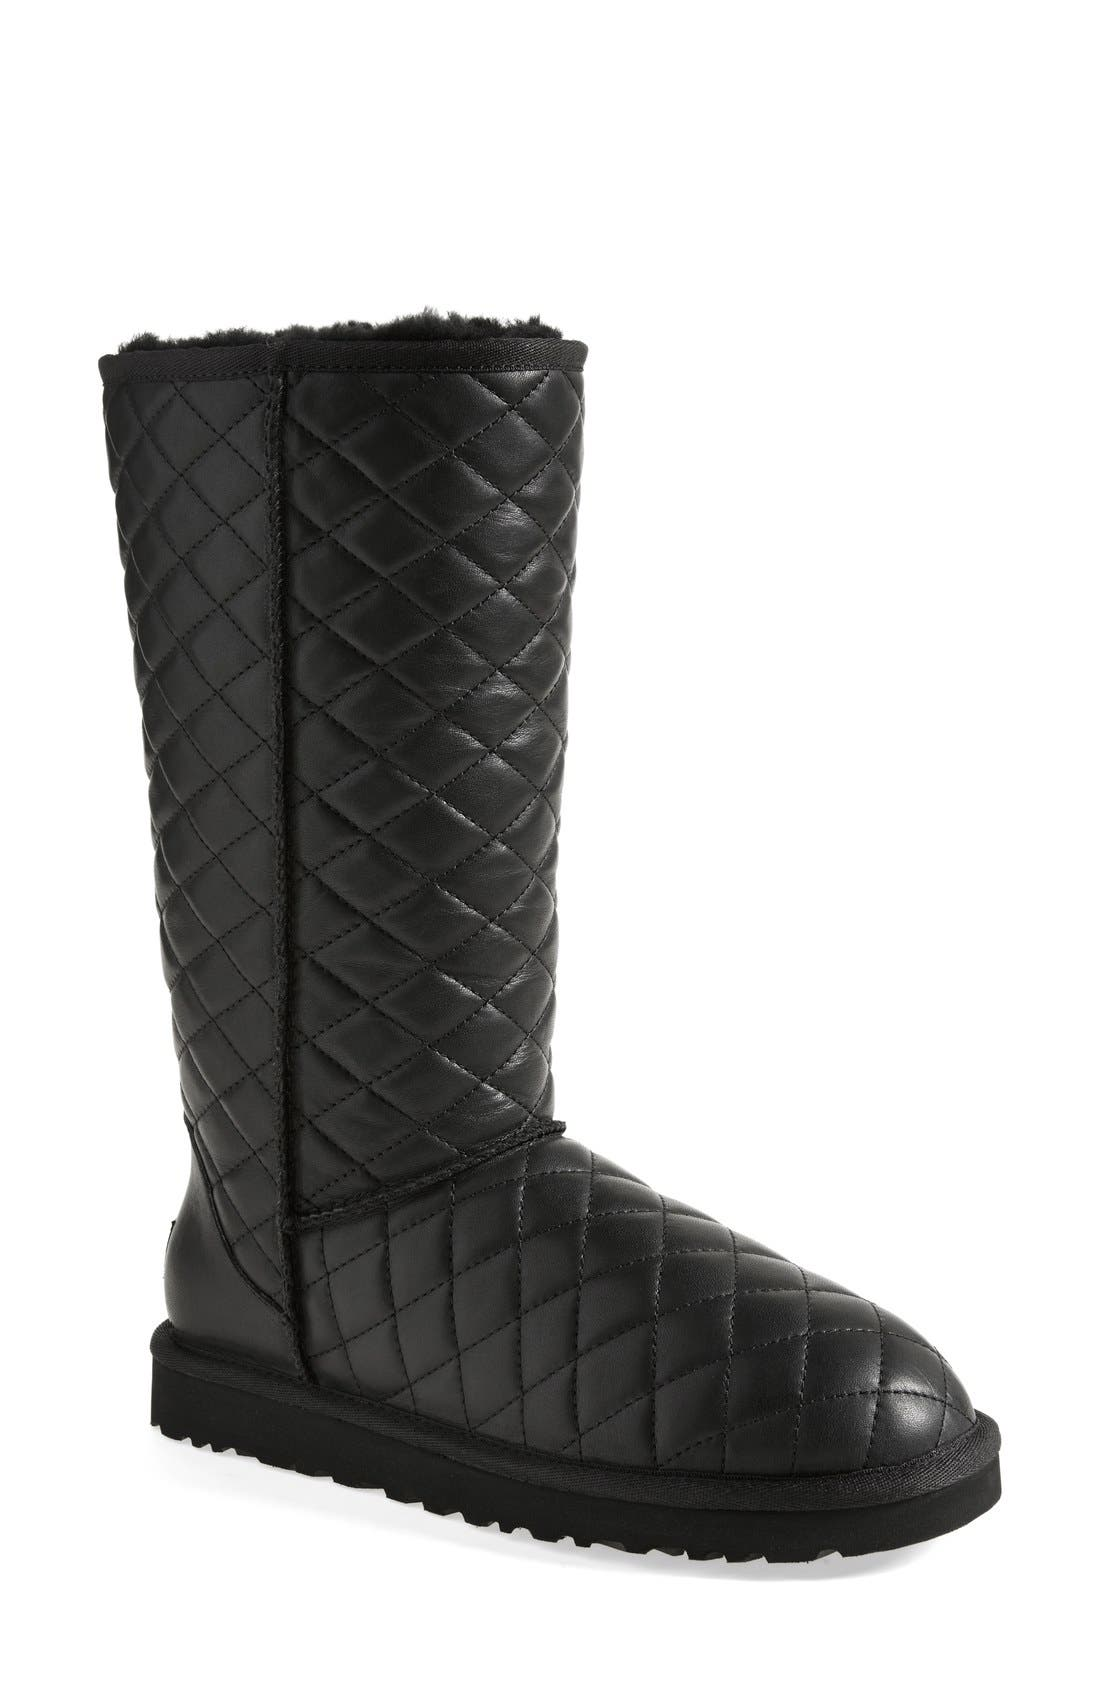 Alternate Image 1 Selected - UGG® 'Classic - Tall' Diamond Quilted Boot (Women)